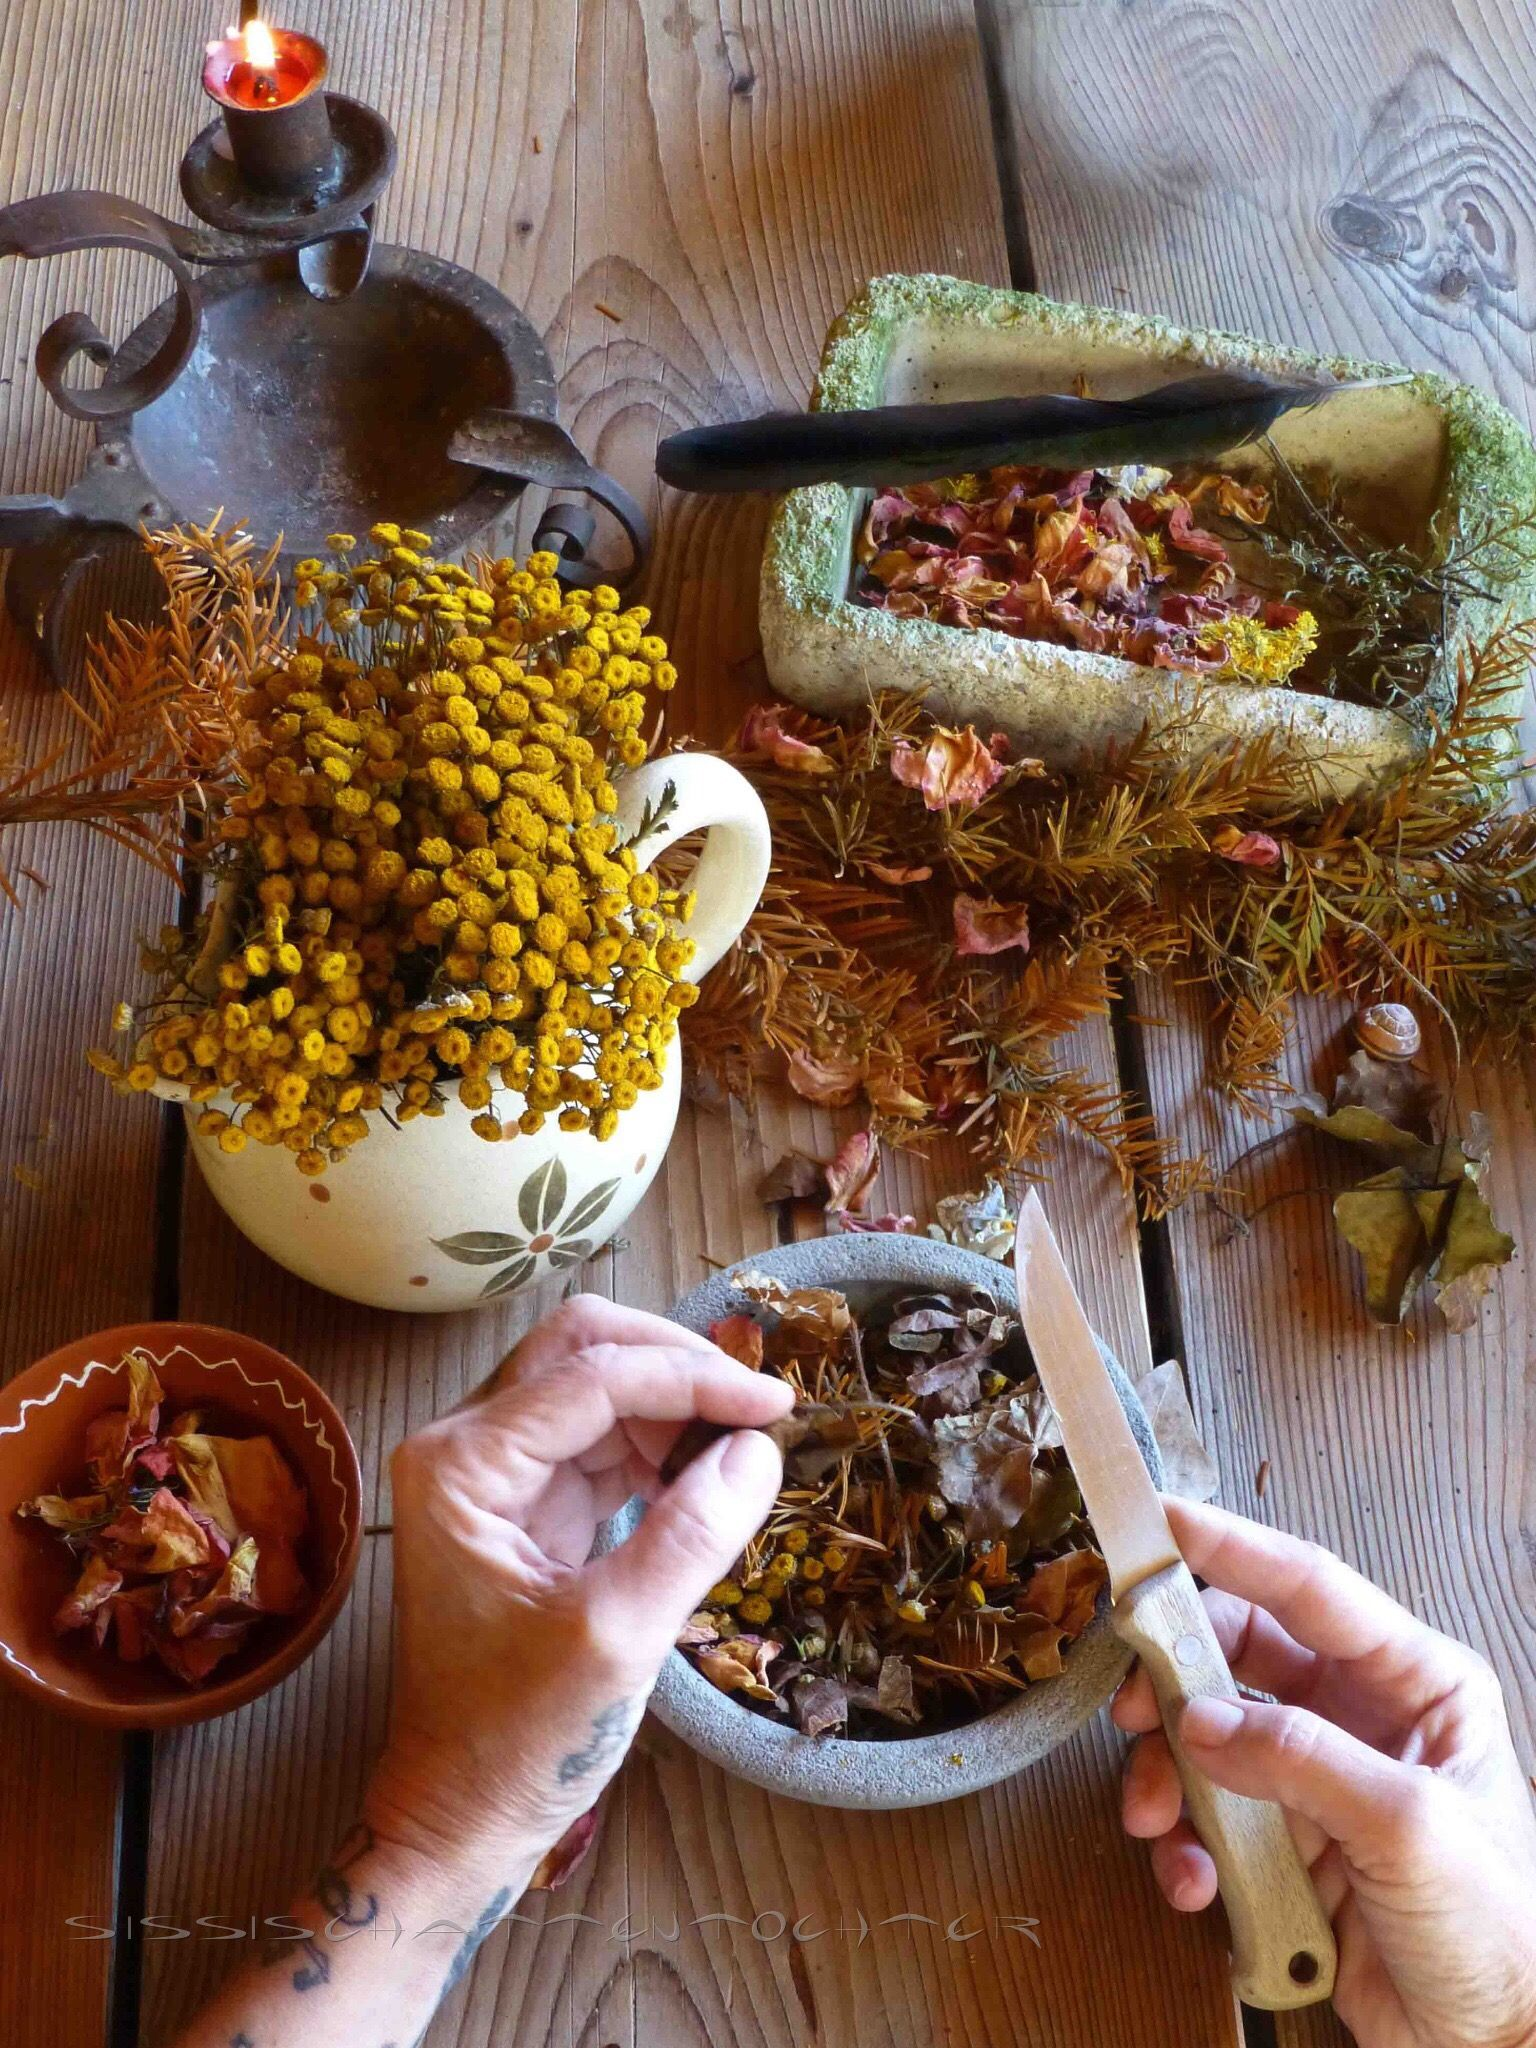 Making Incense Is Relatively Simple Just Take Some Herbs Crush Them And Mix Them Together Samhain Incense Blend Blend Herbalism Herbal Witch Witch Herbs